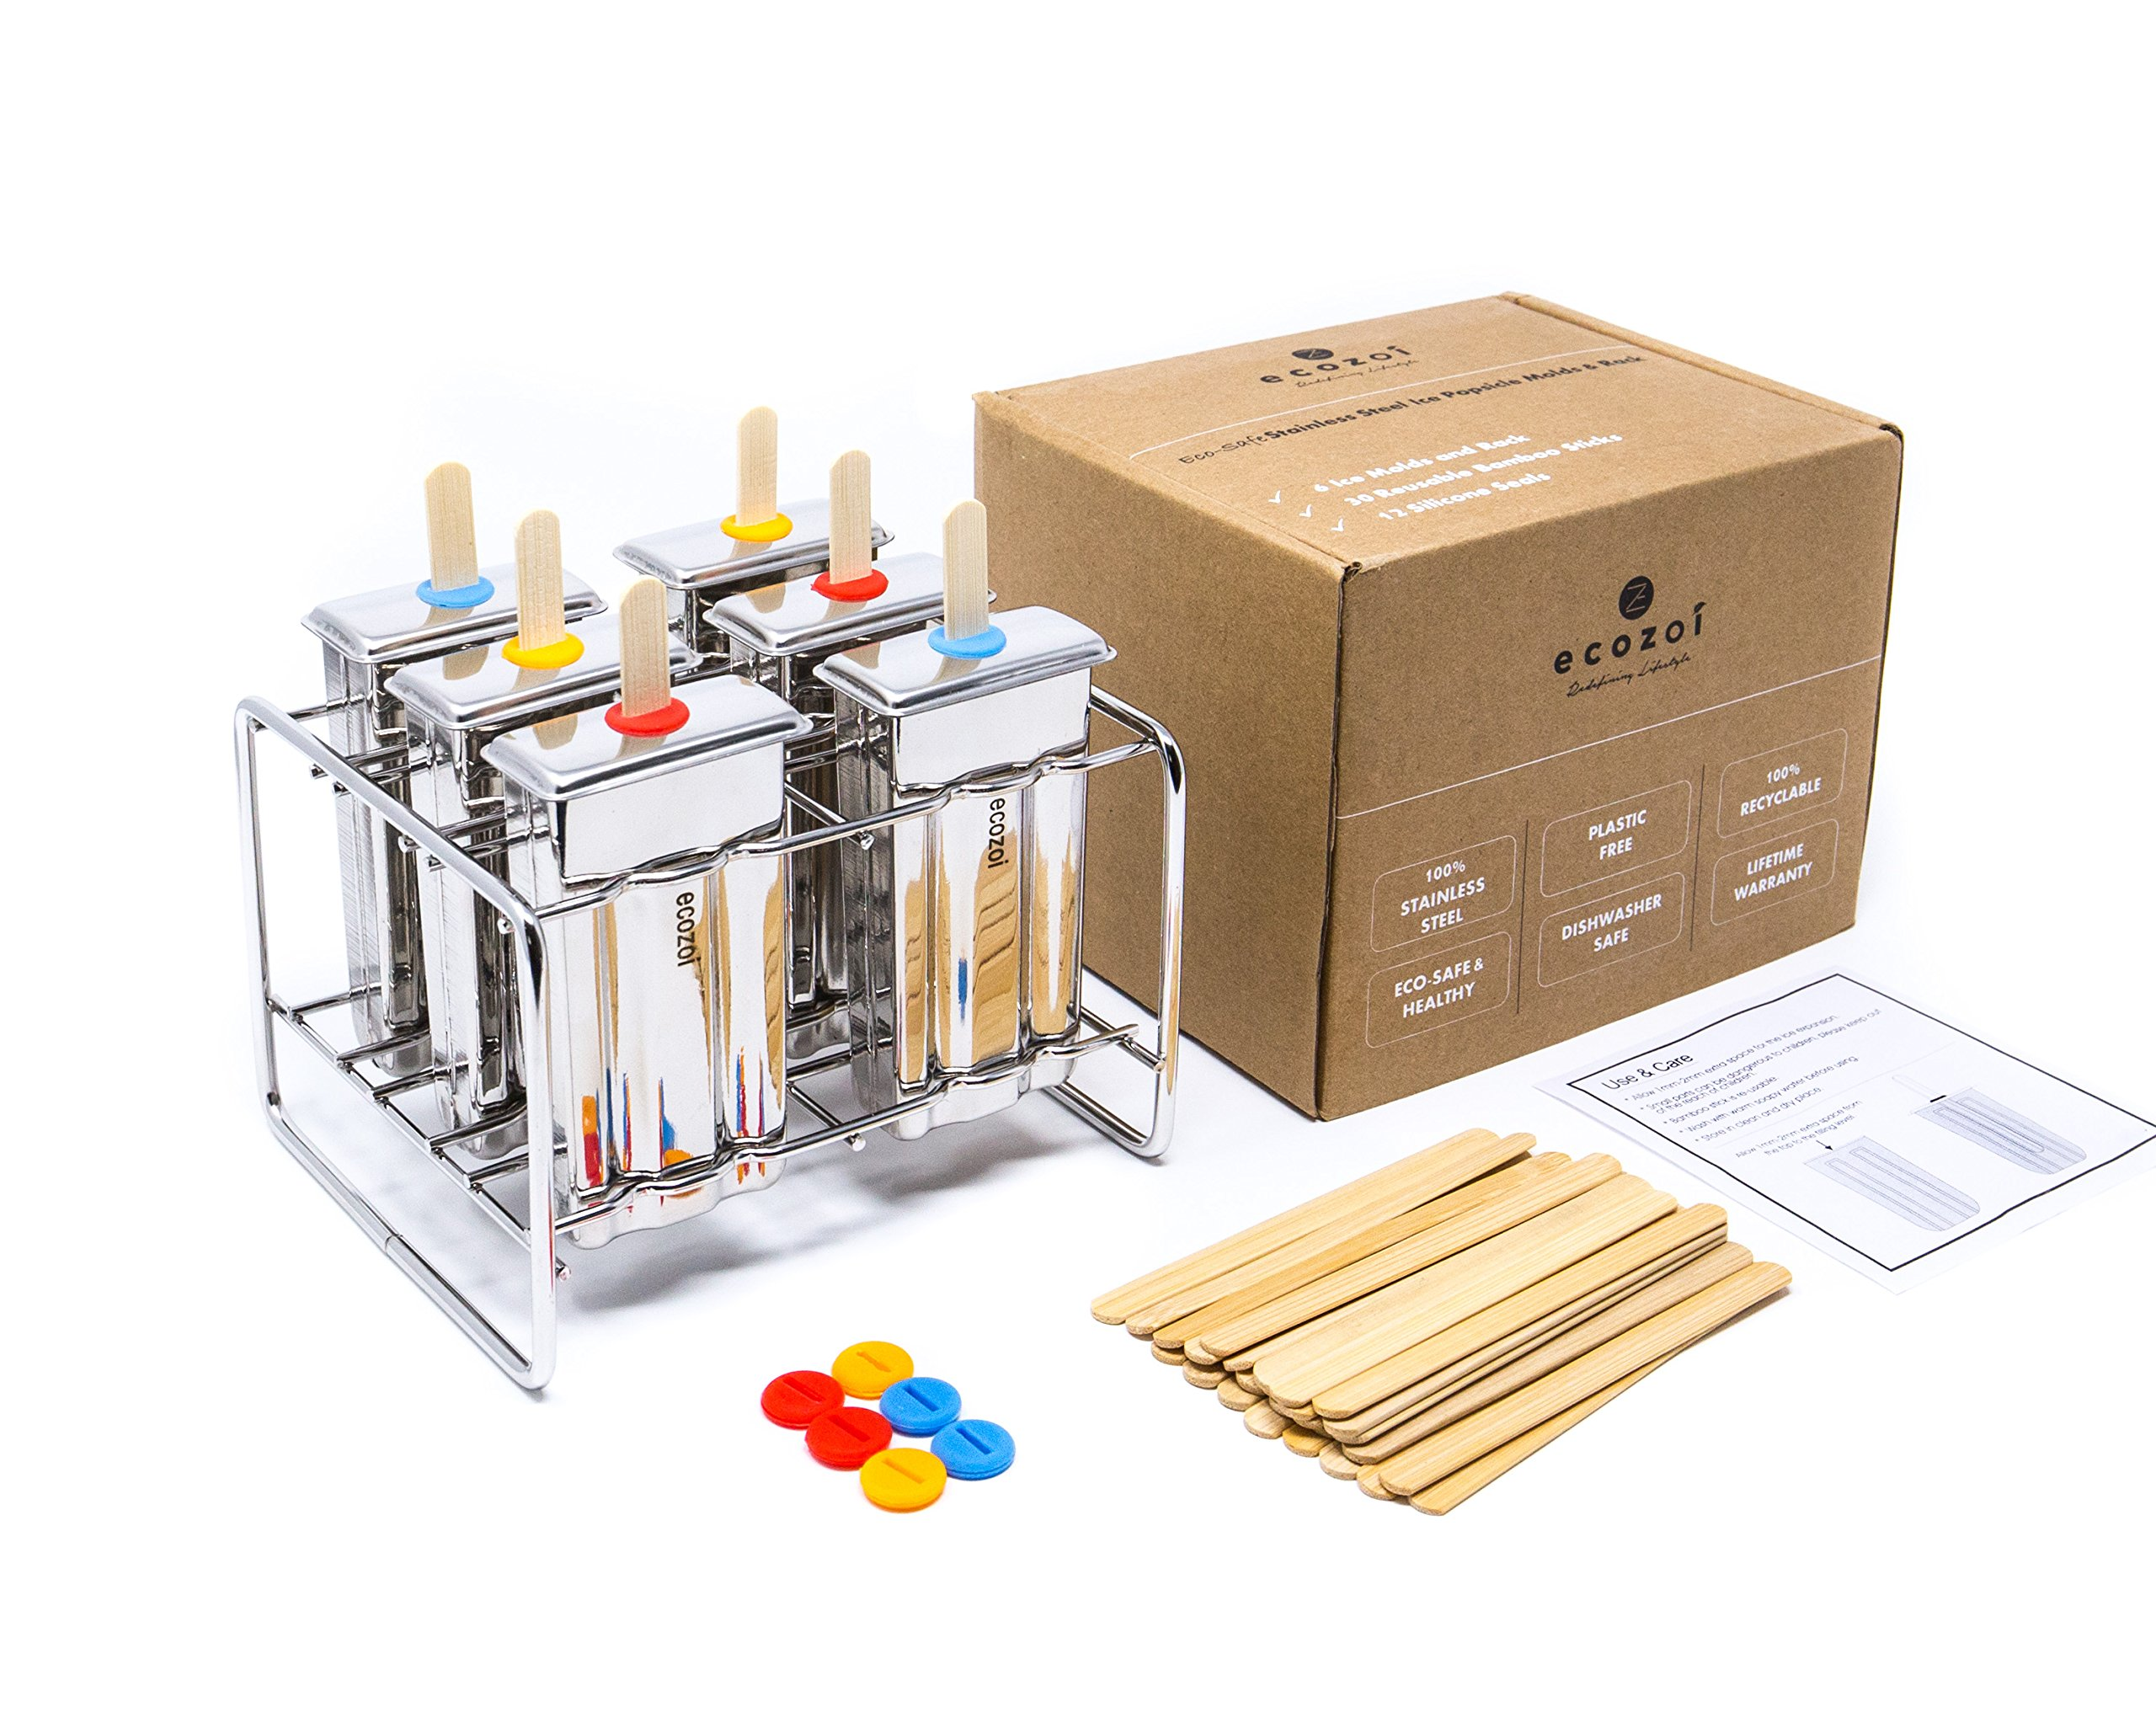 Ecozoi Eco-Safe Stainless Steel Popsicle Molds and Rack - 6 Ice Pop Makers + 30 Reusable Bamboo Sticks + 12 Silicone Seals + 1 Rack